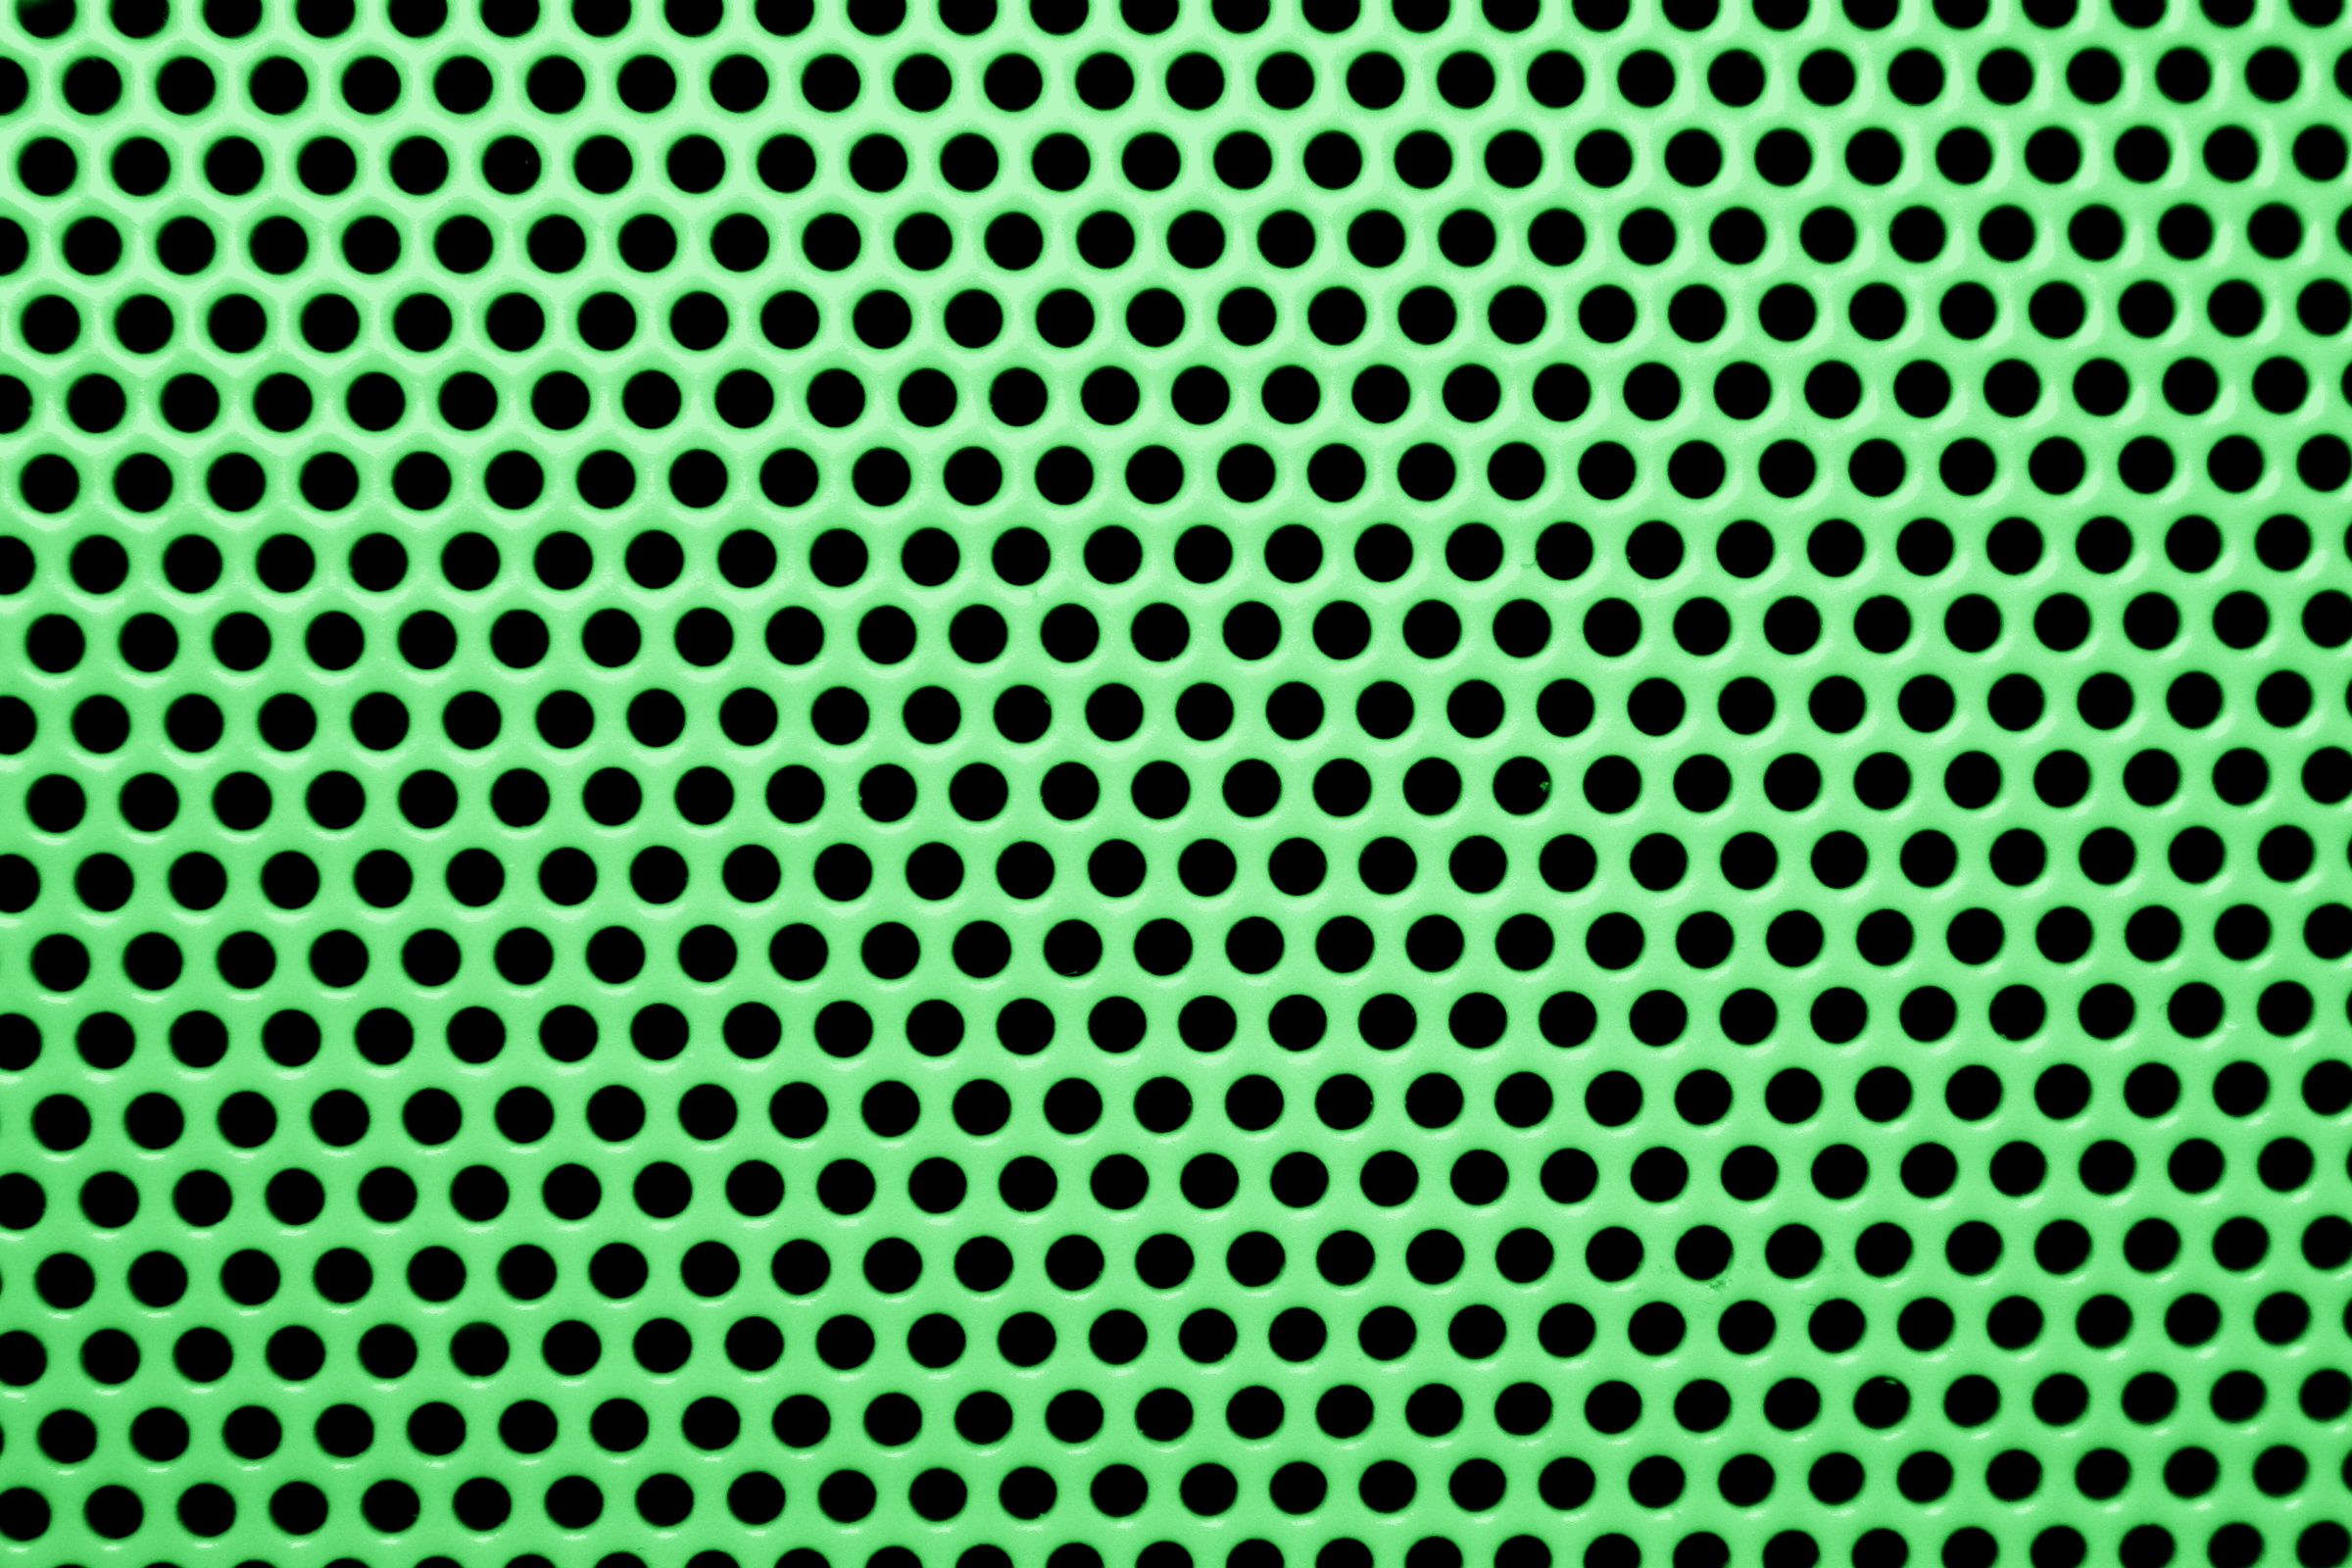 Green Mesh With Round Holes Texture Picture Free